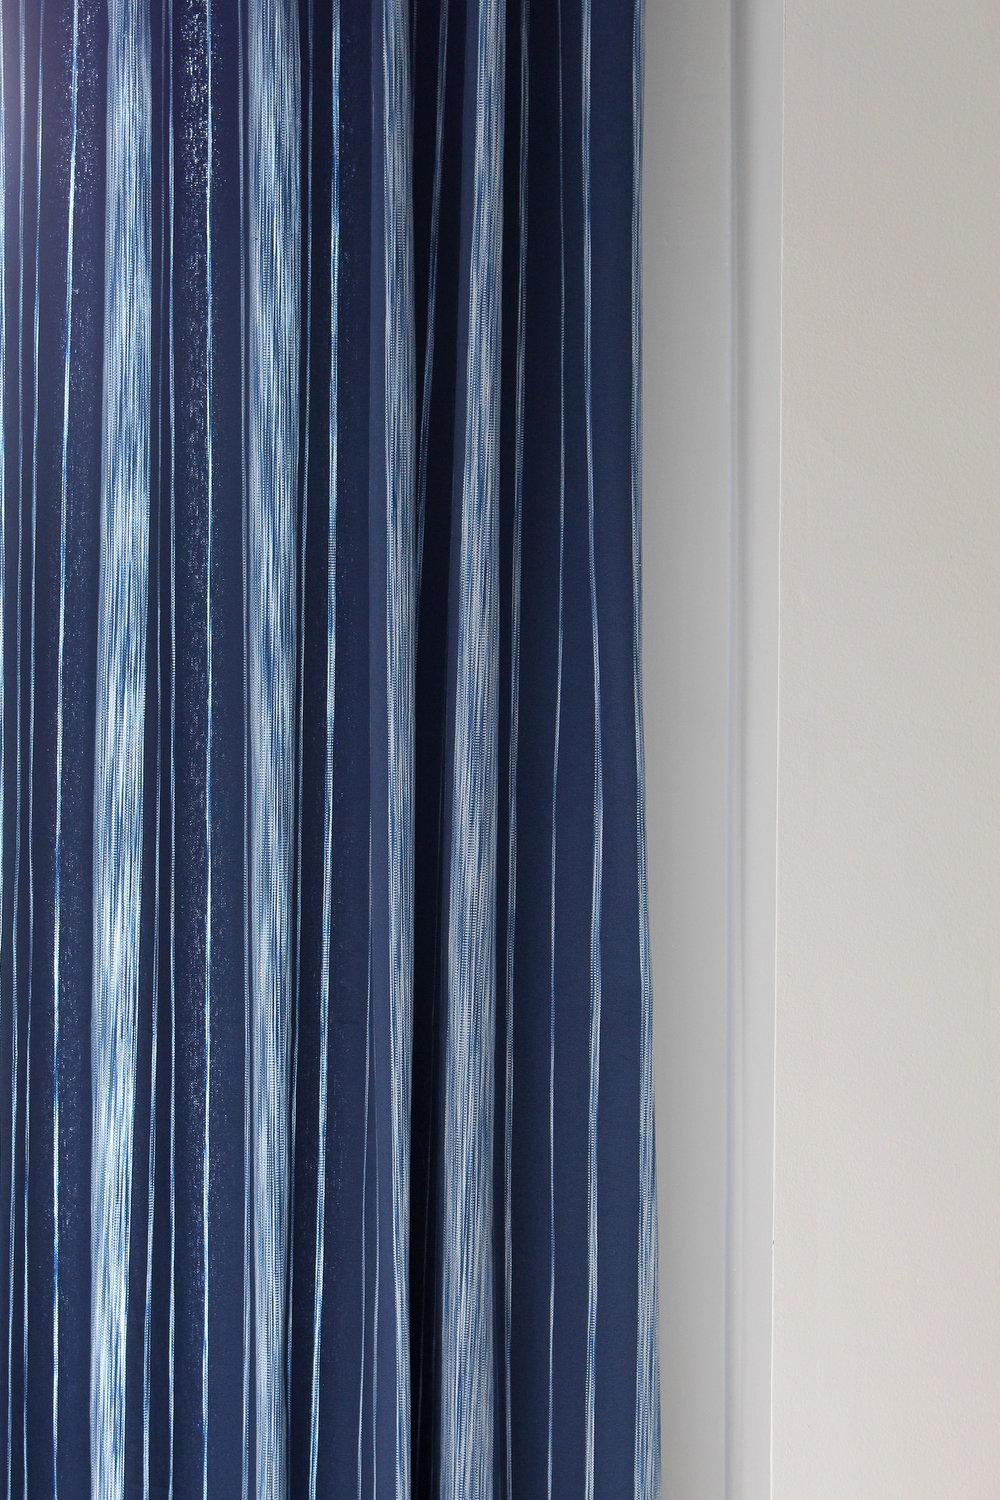 Close up of the Pizzelle Navy fabric from Calico's Vern Yip collection. See it here as a made into a beautiful curtain panel in this guest room.